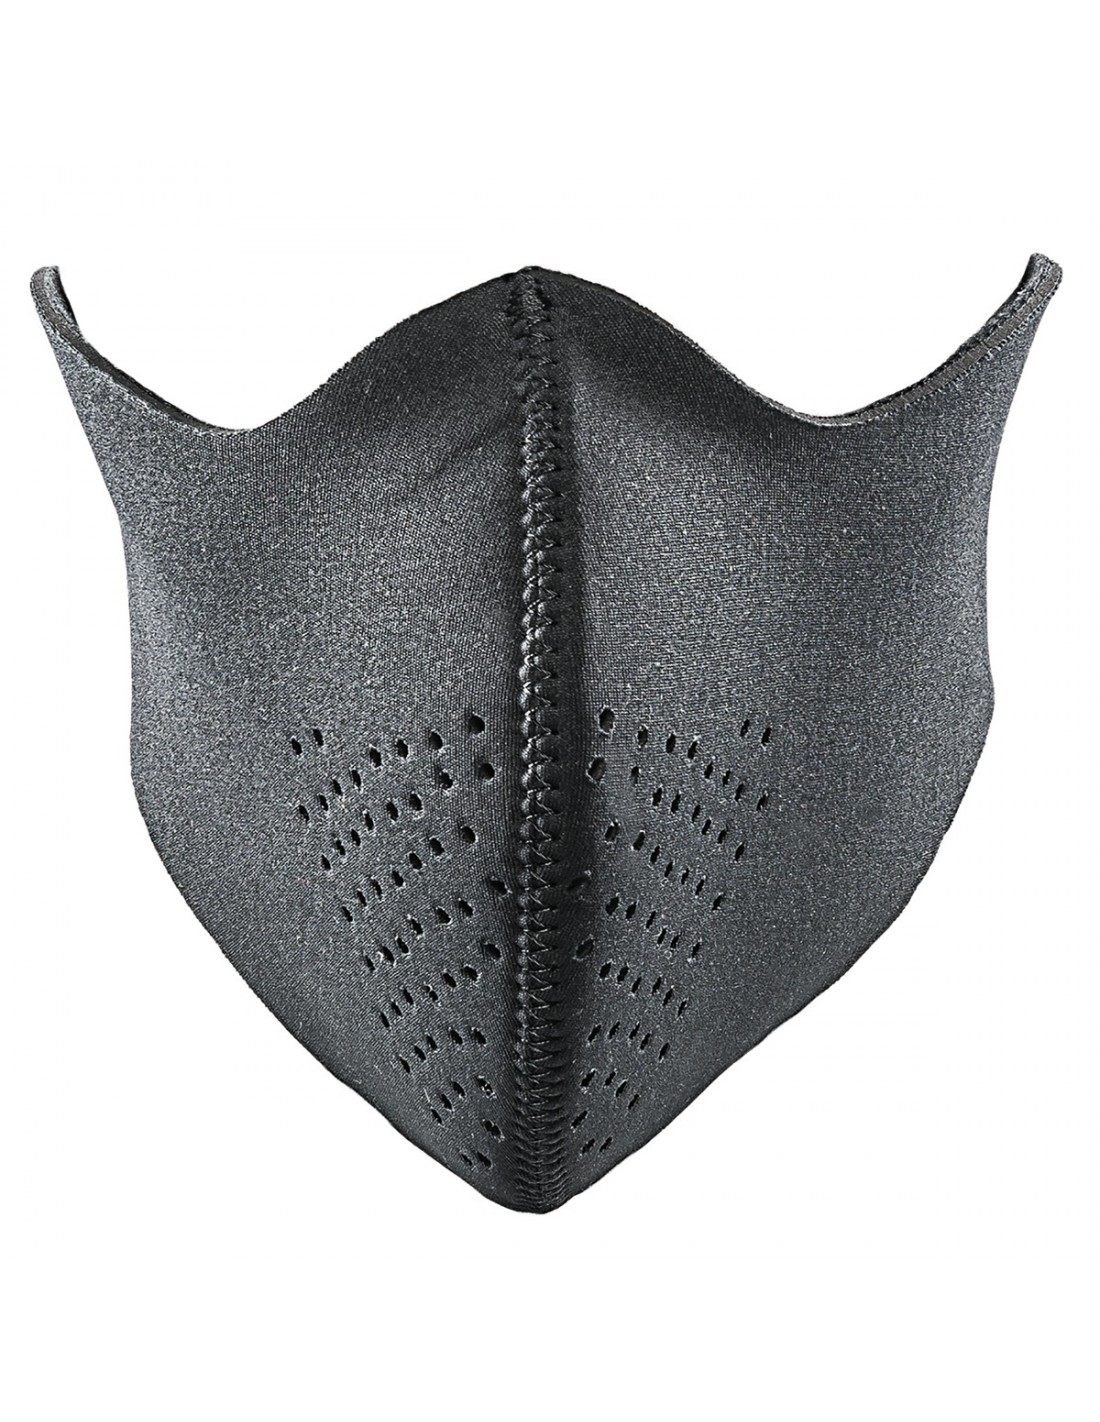 Bula NEO Facemask Black